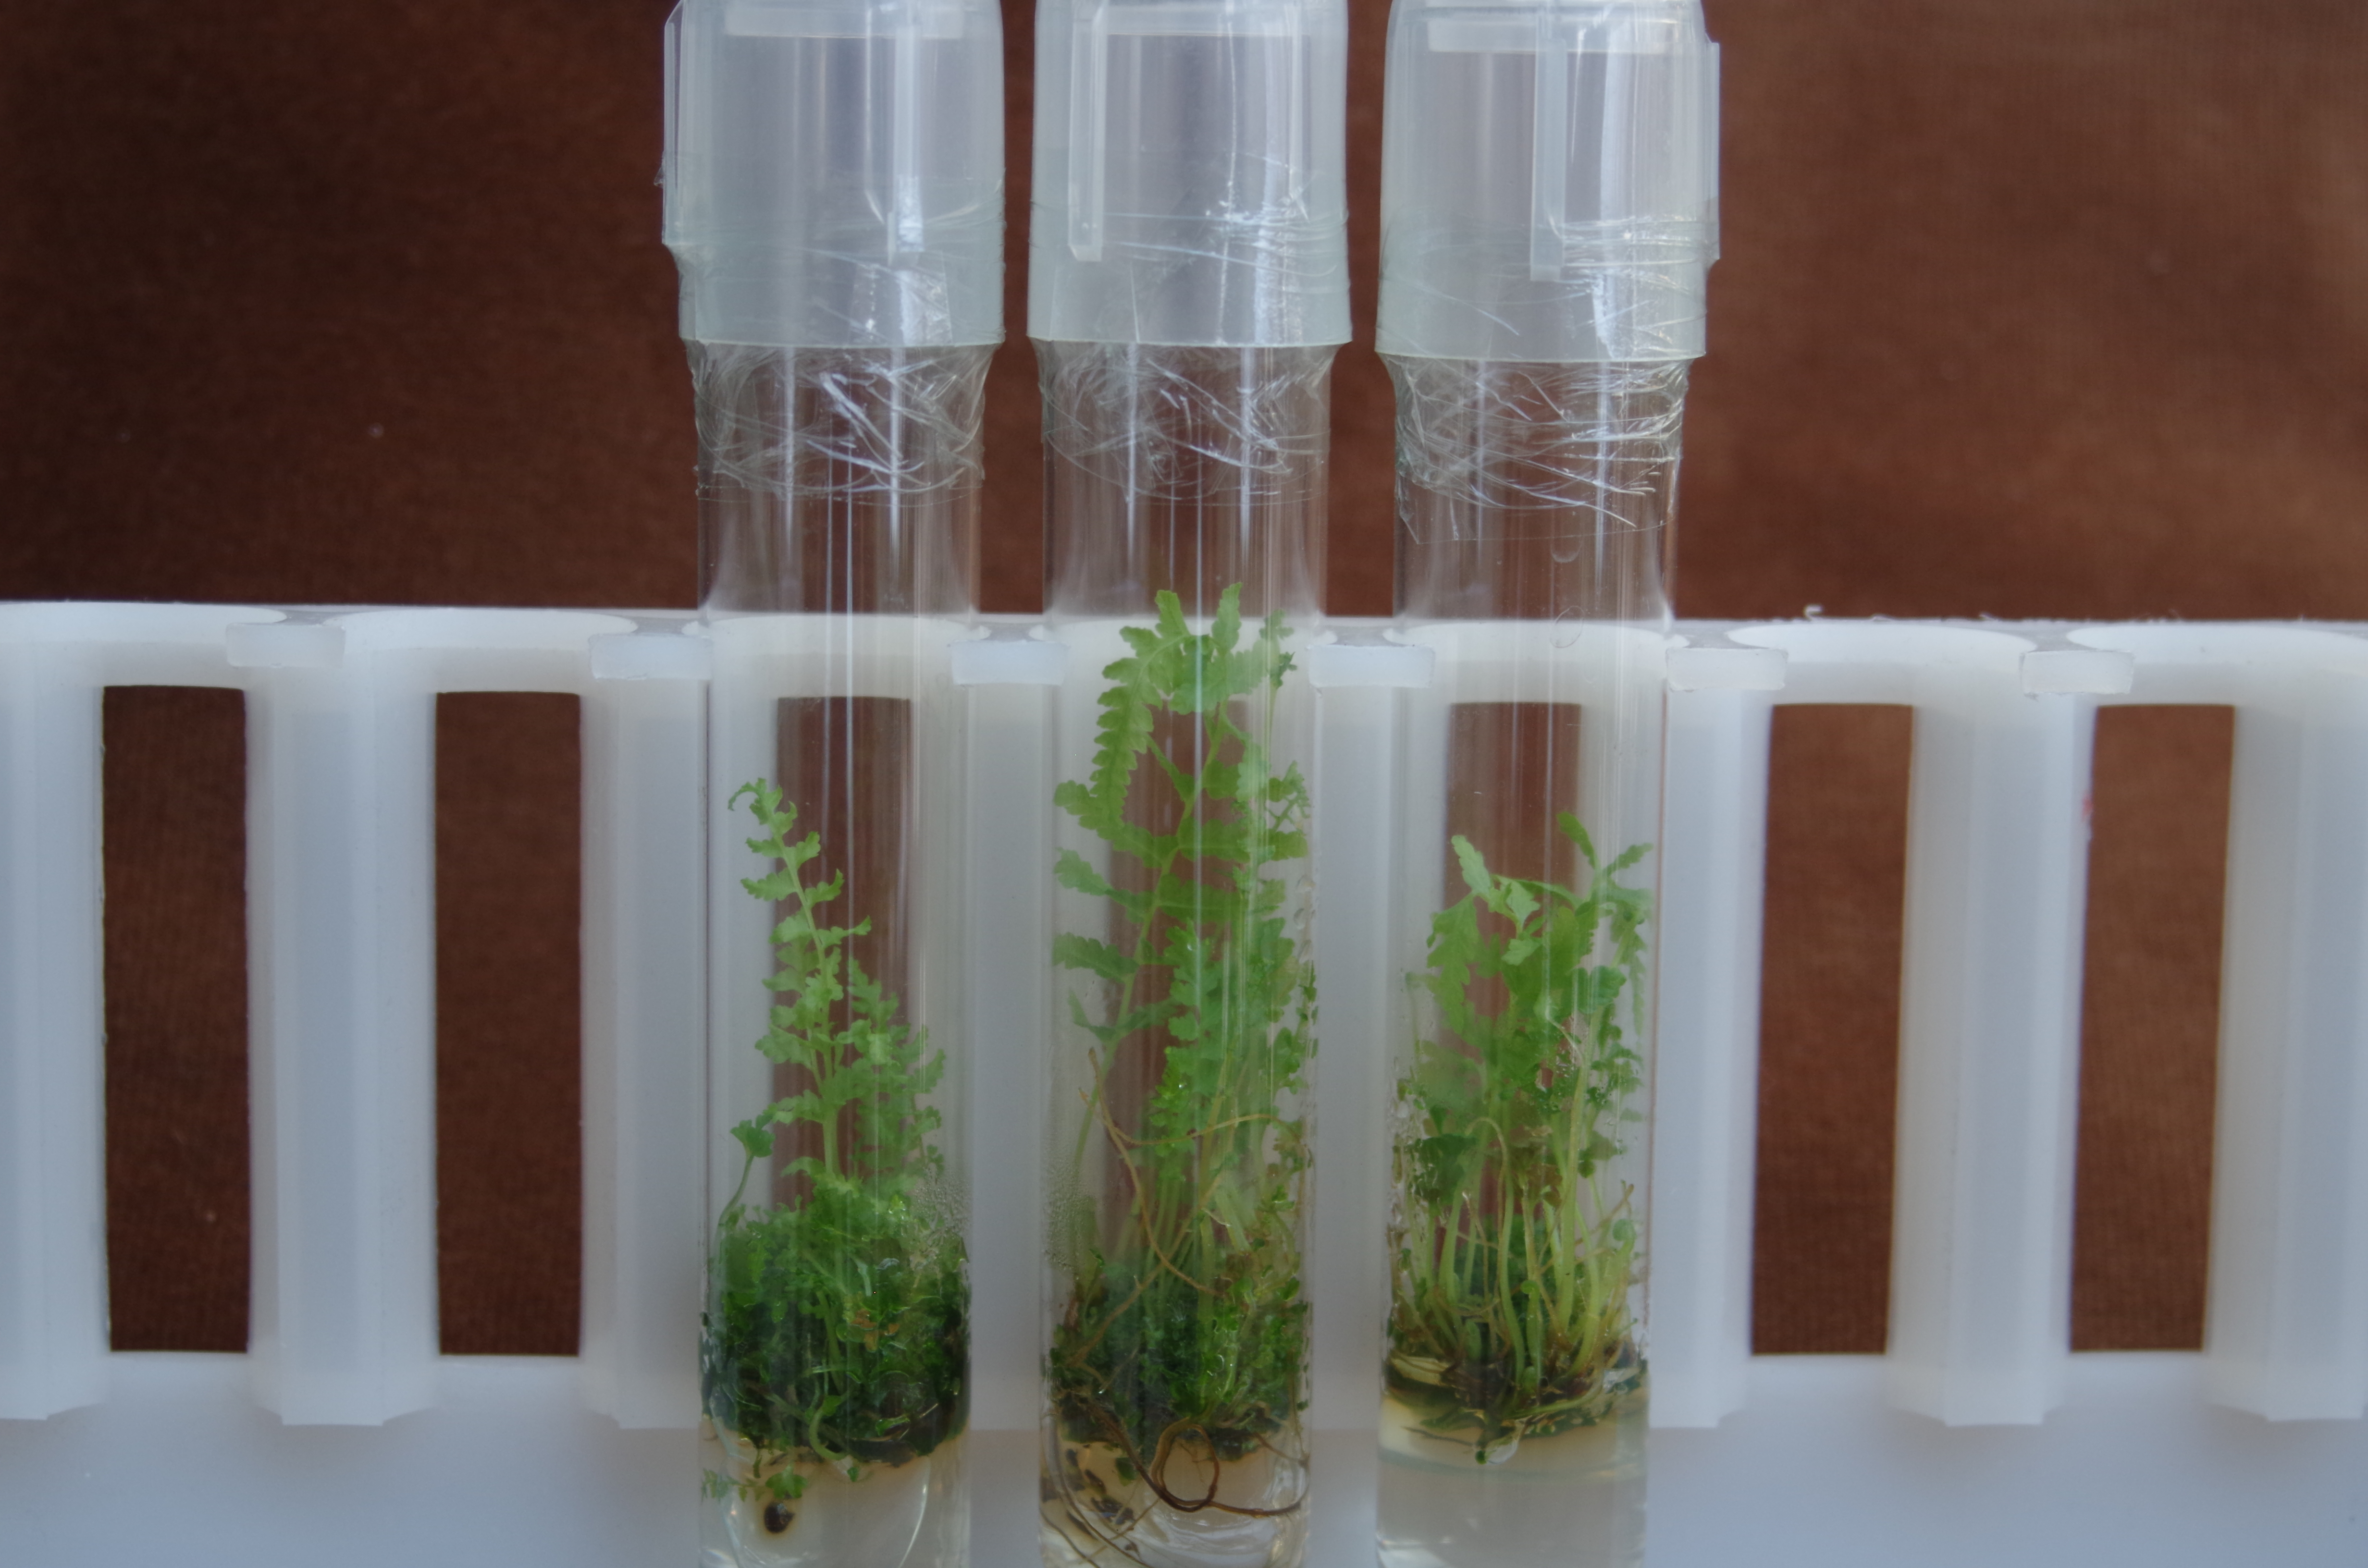 Growing T. patens in test tubes at CREW